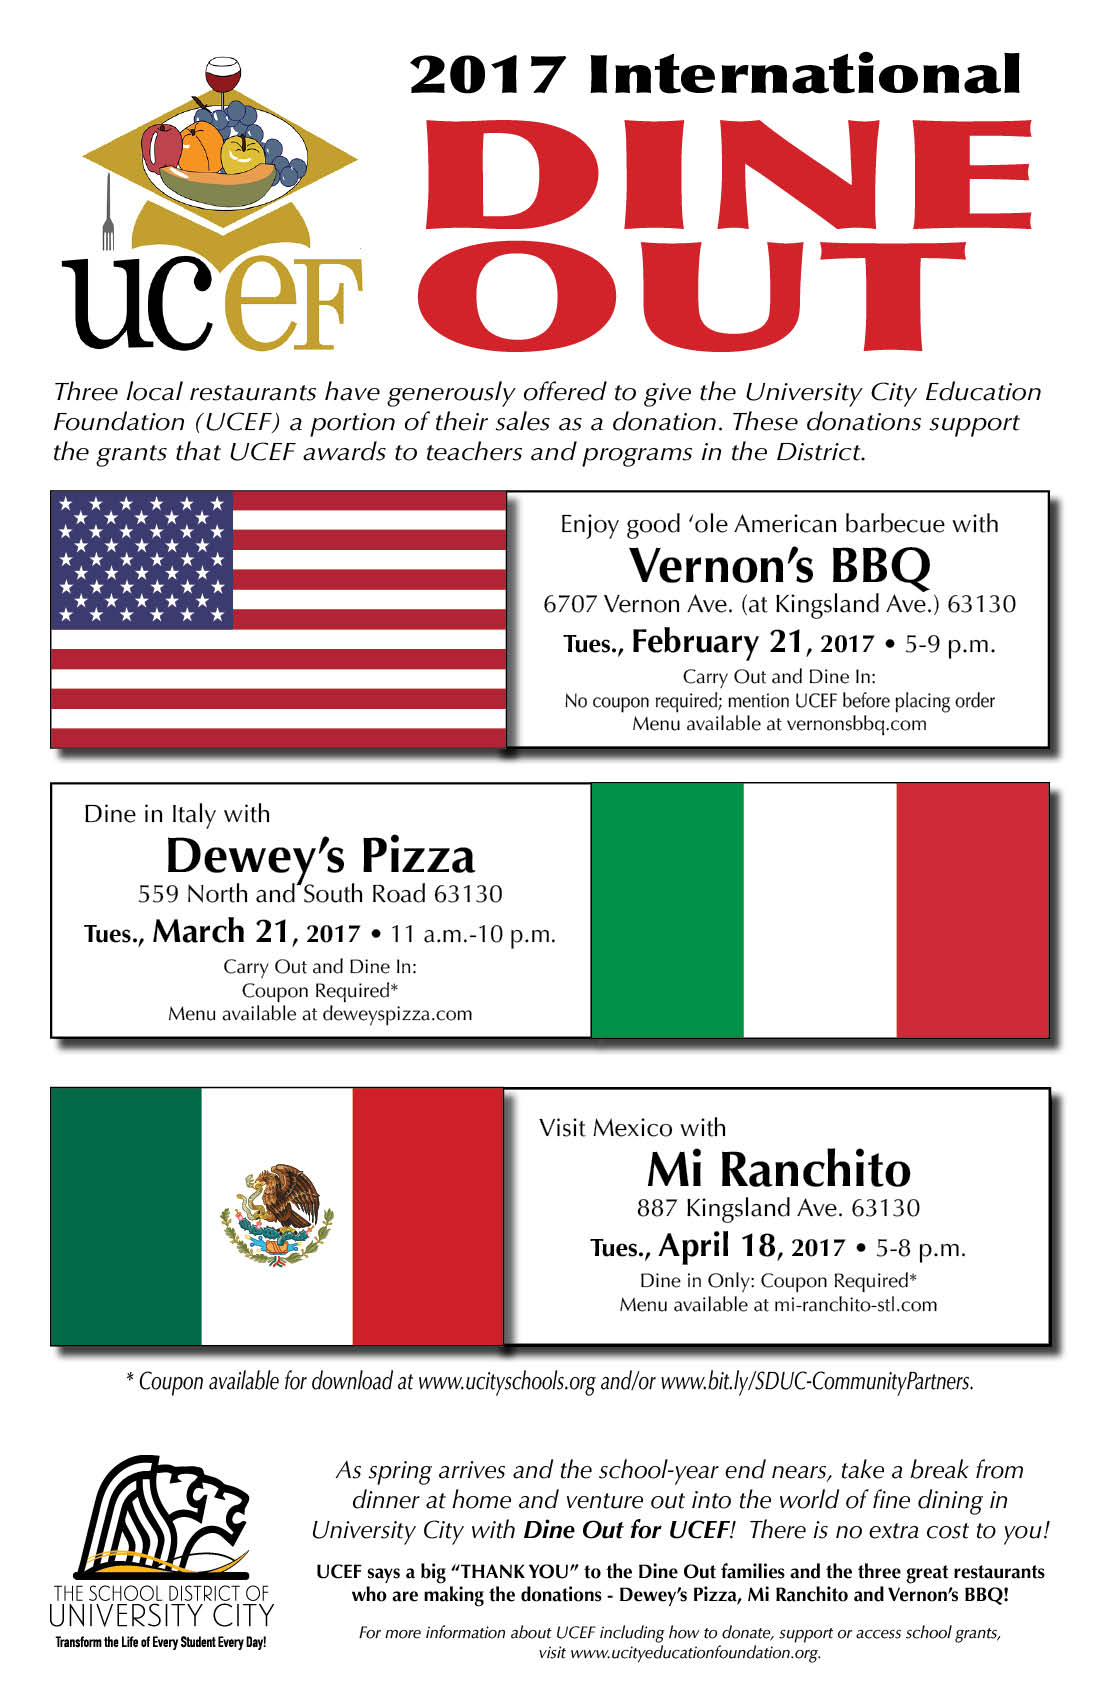 Next UCEF Dine Out at Dewey's - March 21